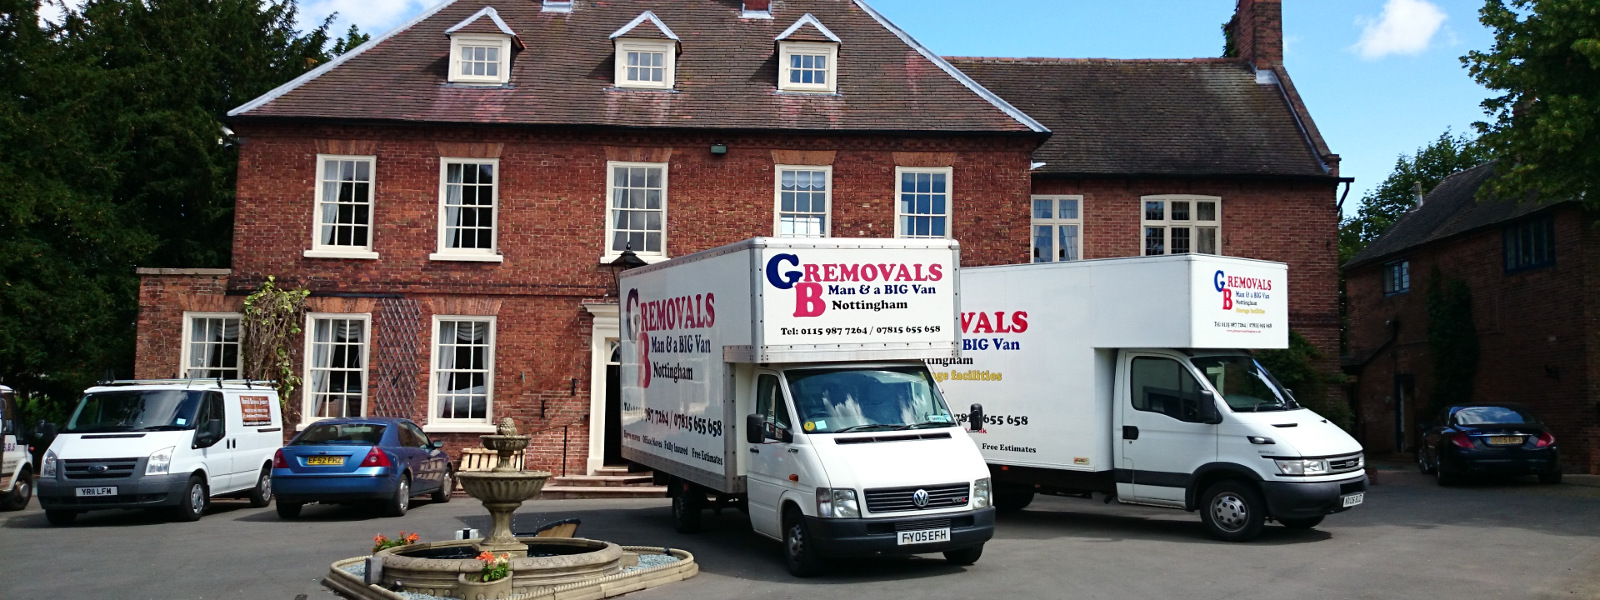 GB Removals